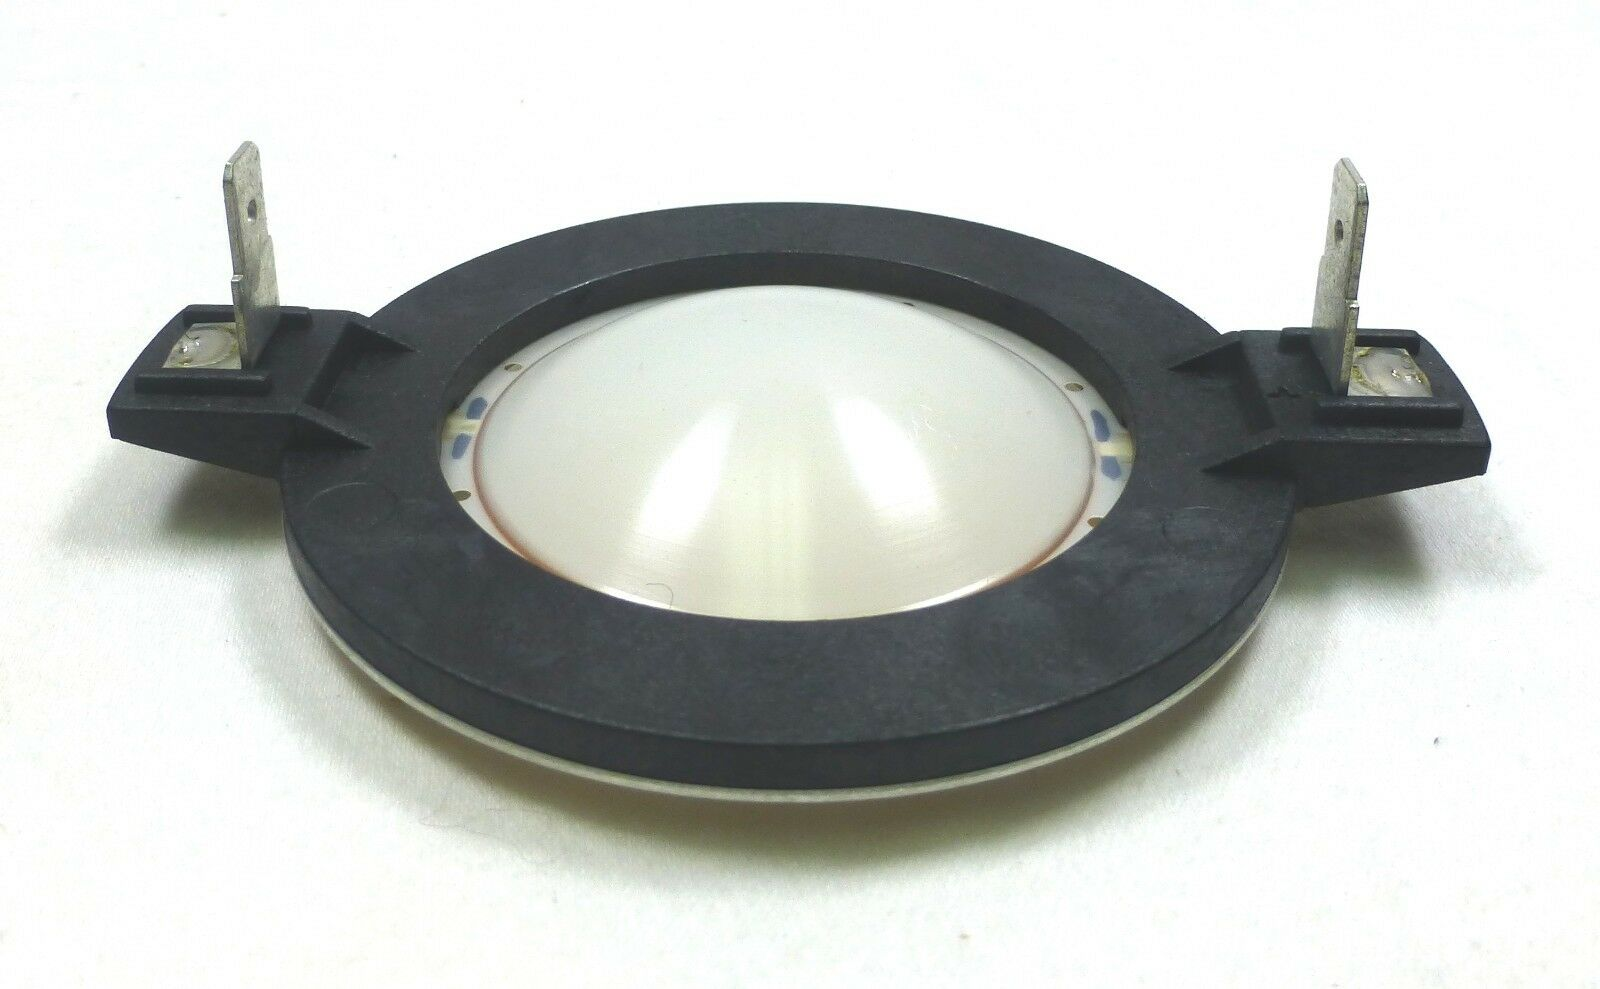 Original Factory RCF M83 Genuine Diaphragm - RCF N350, ART 300 Driver 8 Ohm 44mm